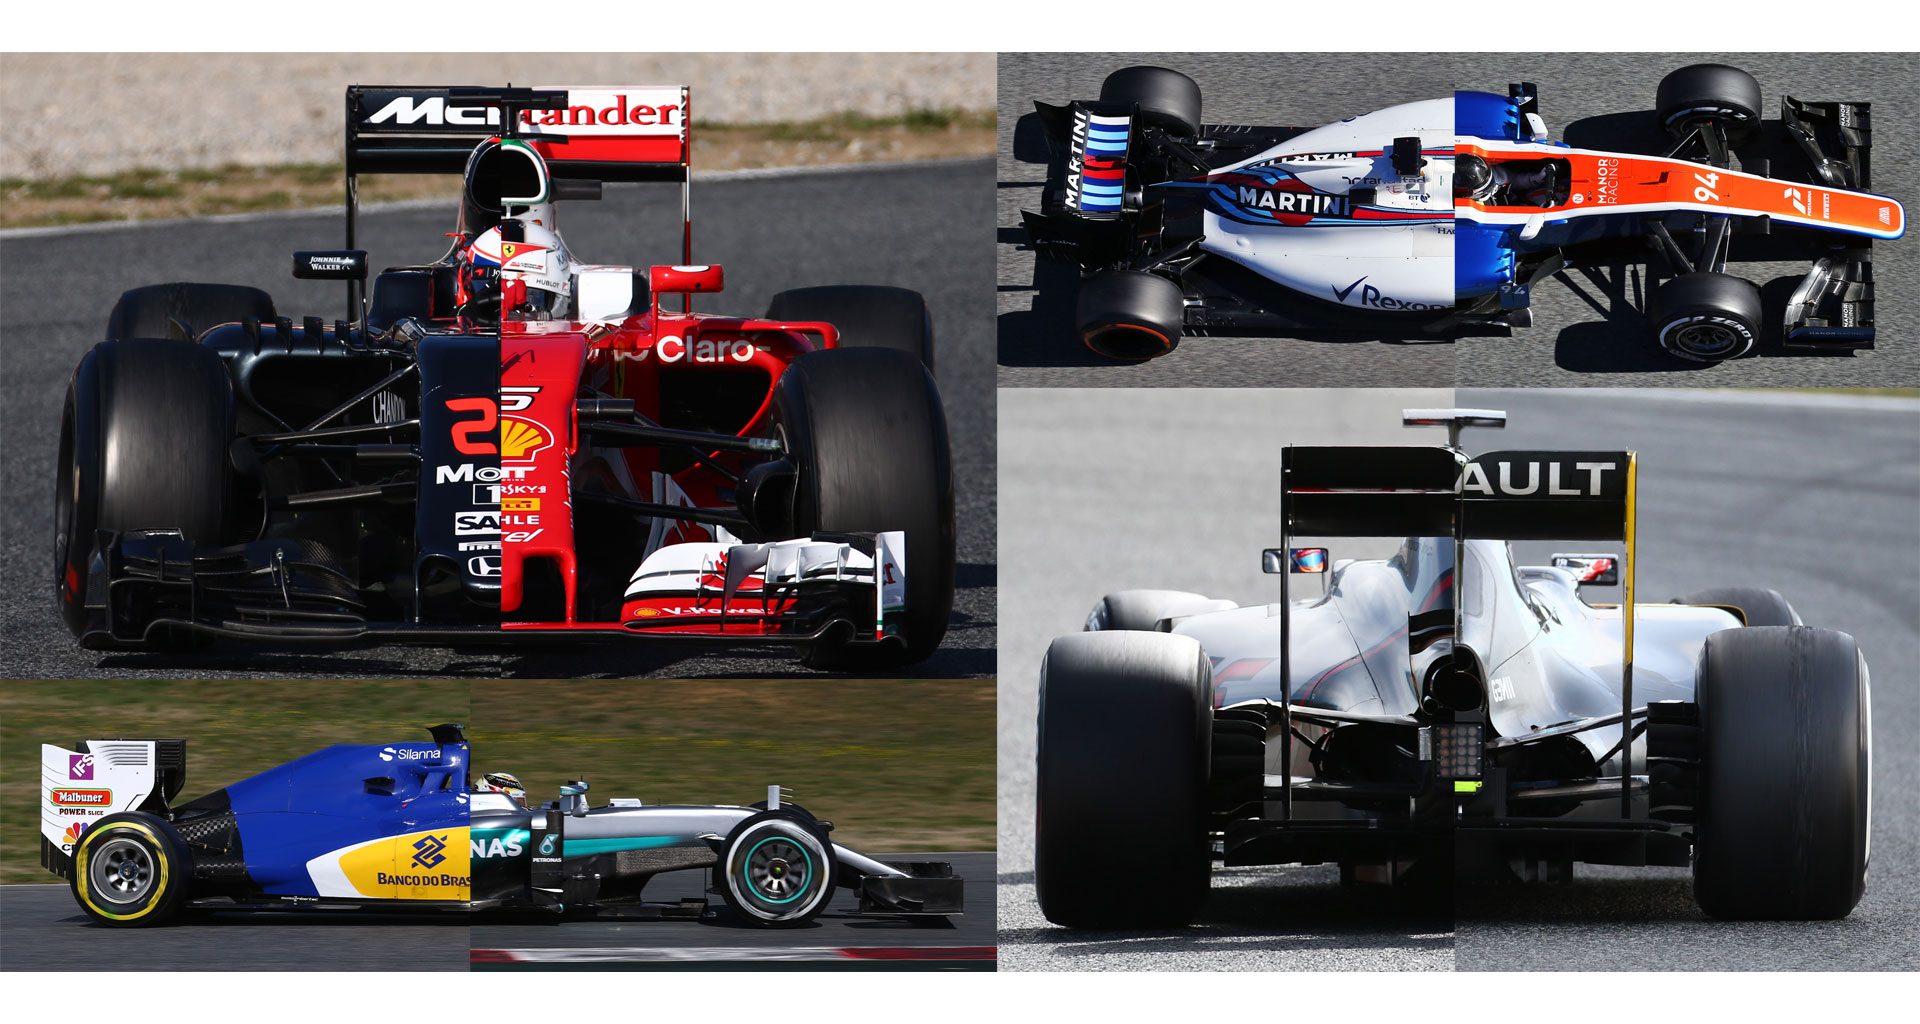 Compare every F1 car of 2016 from every angler